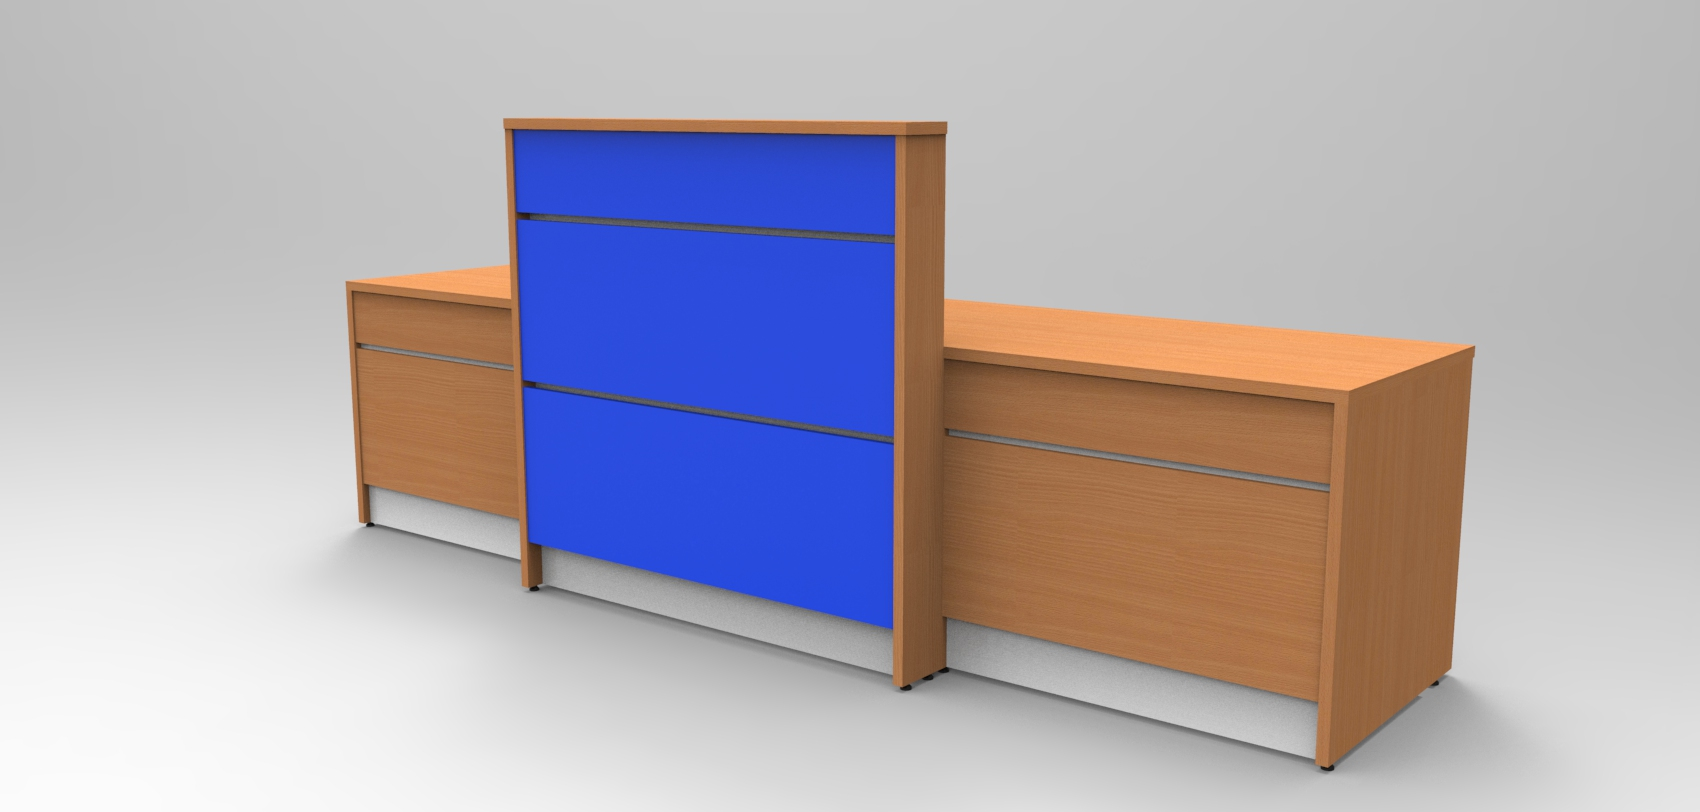 Image 8U -Union reception desk - Beech and Blue.